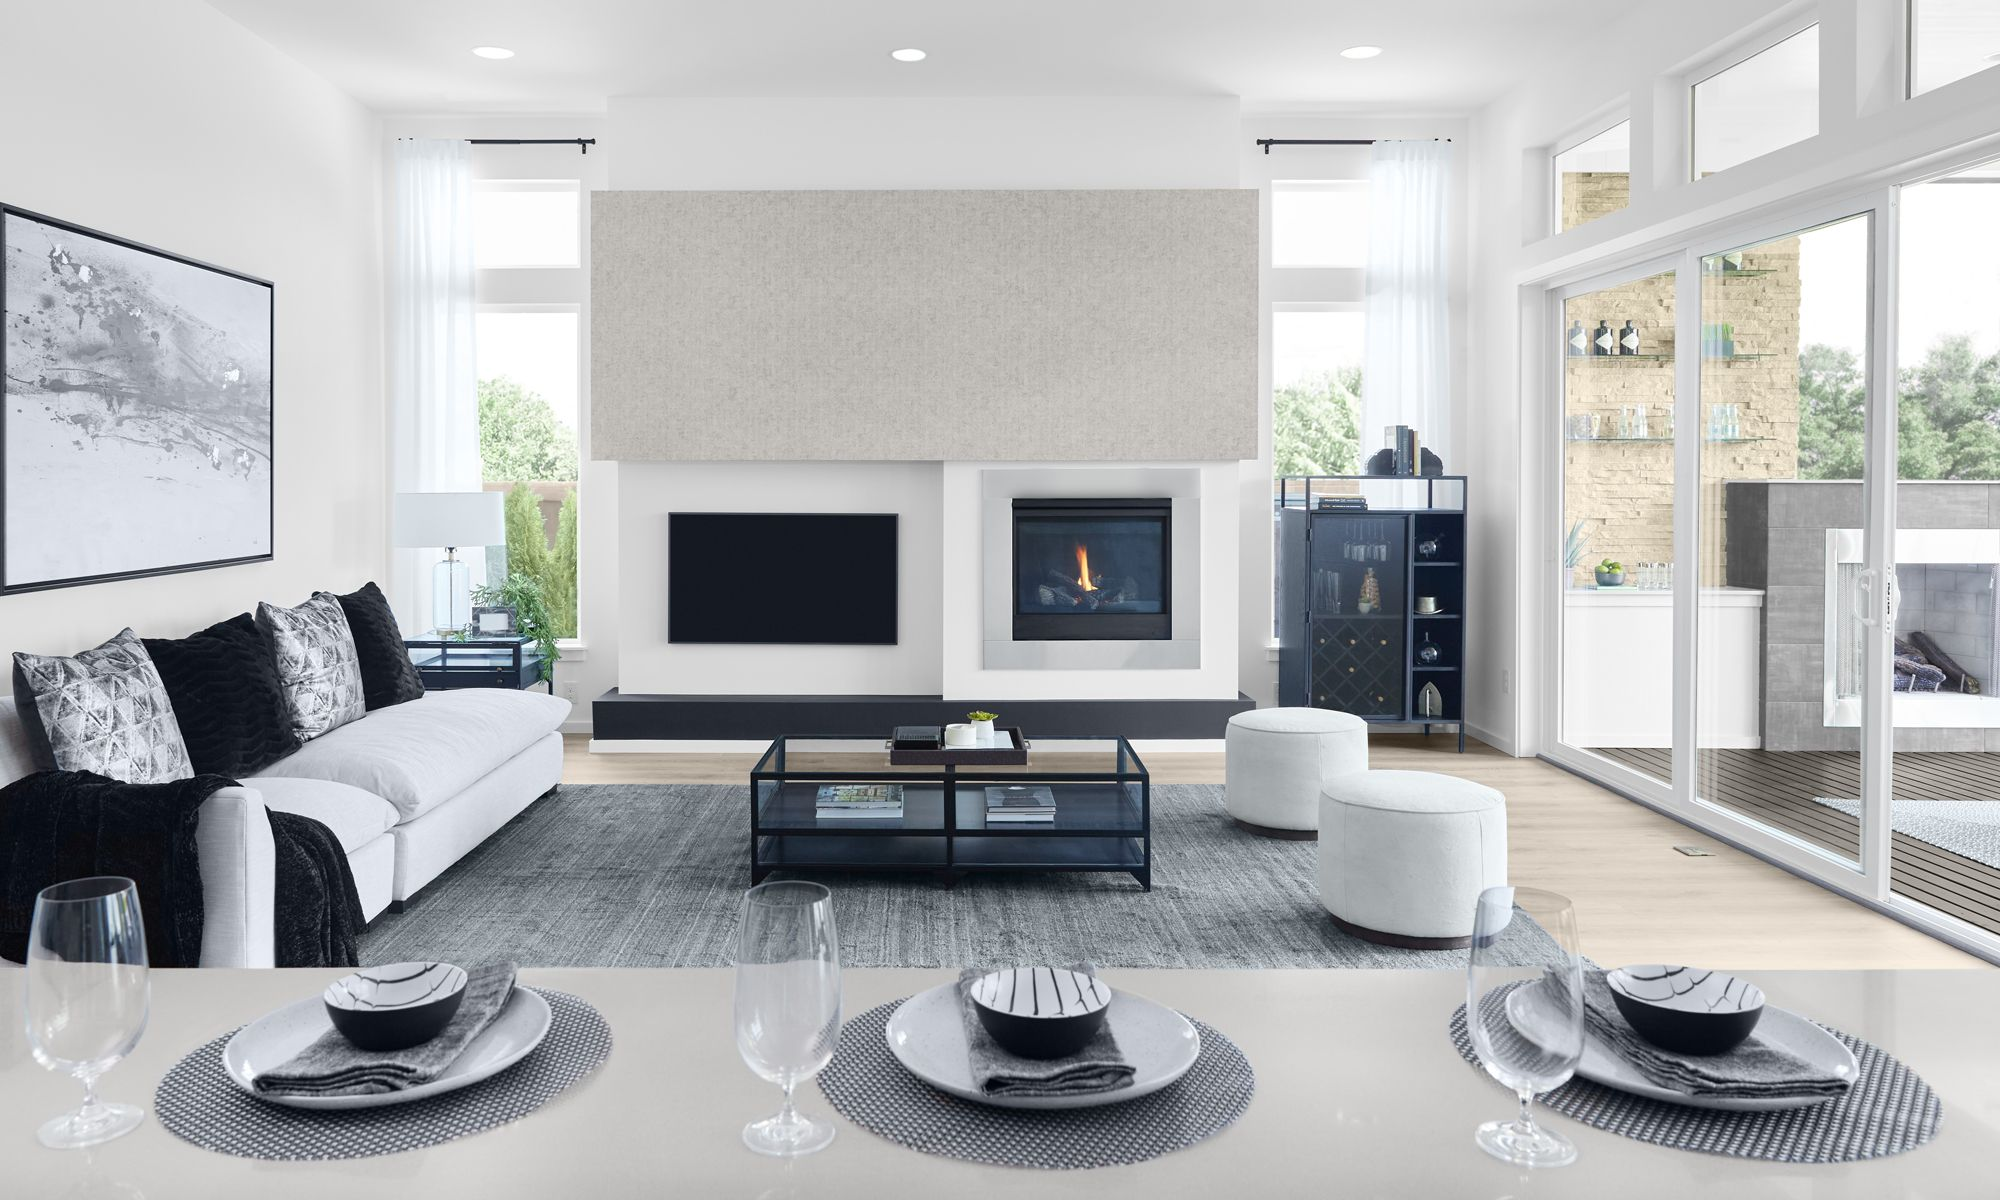 Living Area featured in the Kingston V2 By MainVue Homes in Bremerton, WA